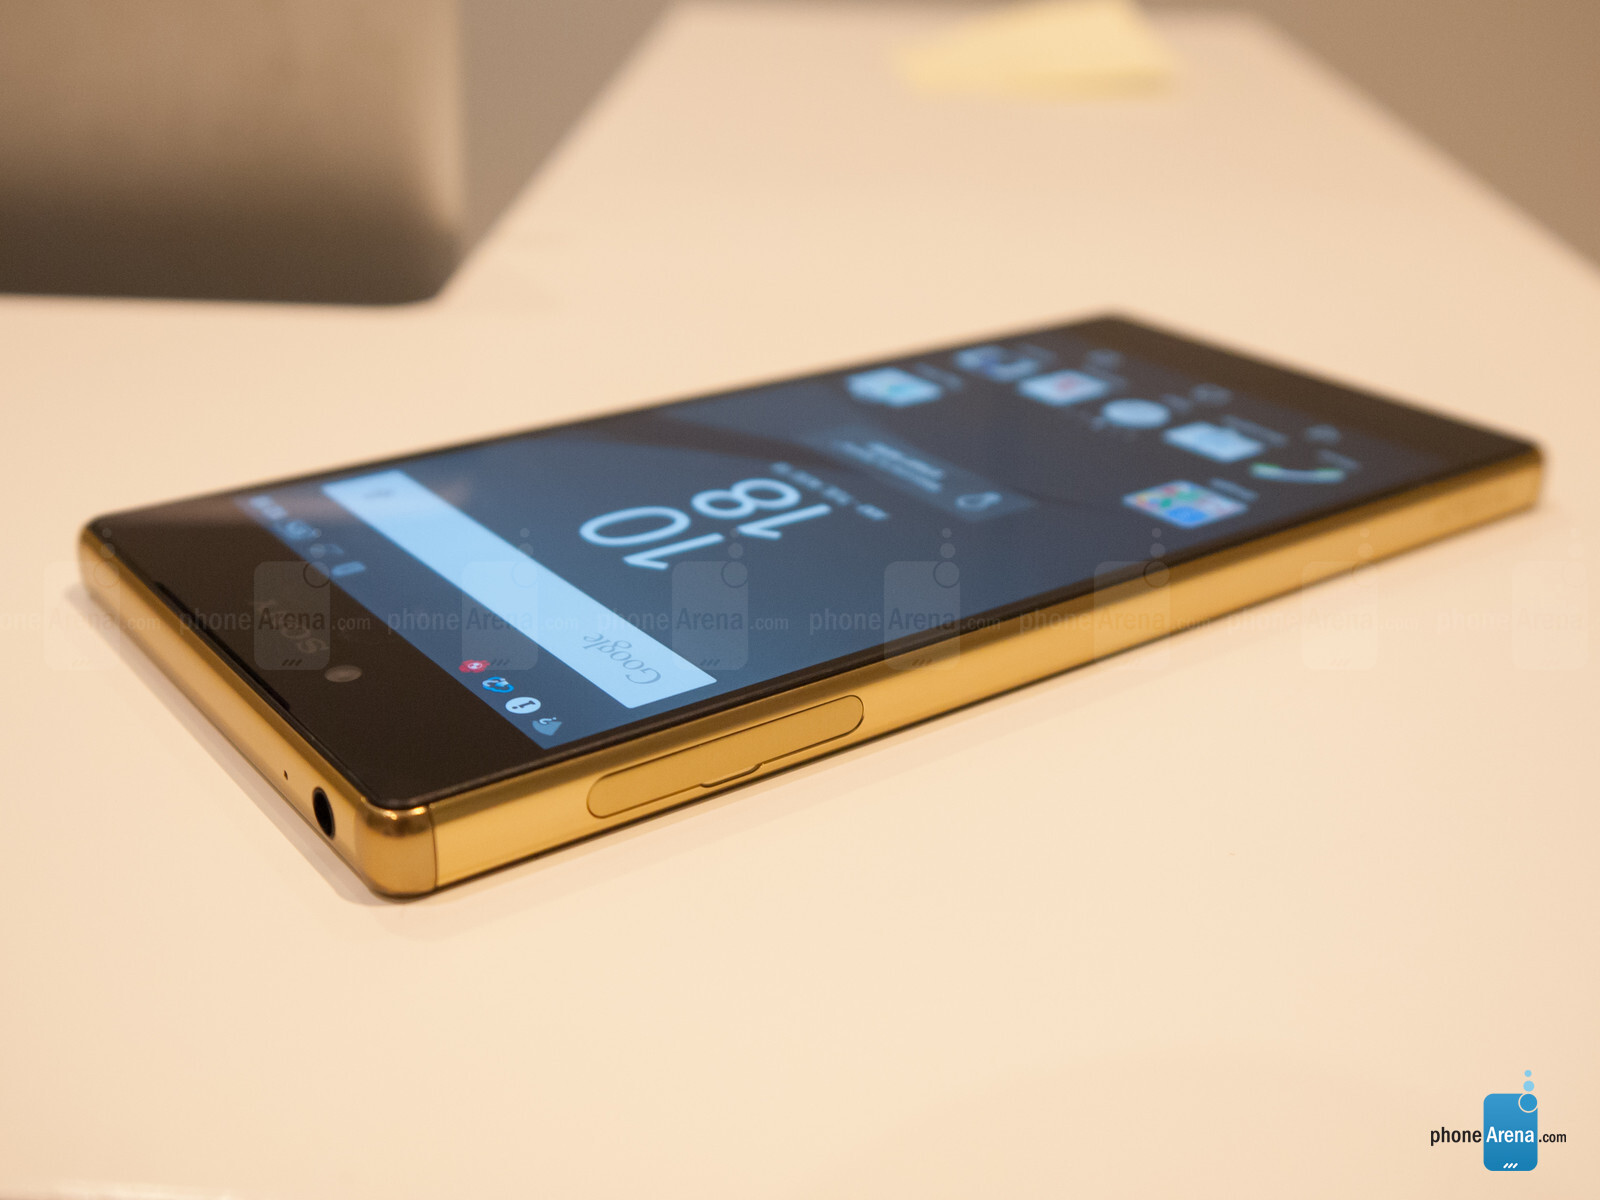 sony xperia z5 premium gold. on the other hand, z5 premium raises question whether a 4k screen smartphone is truly something we need or simply gimmick. sony xperia gold